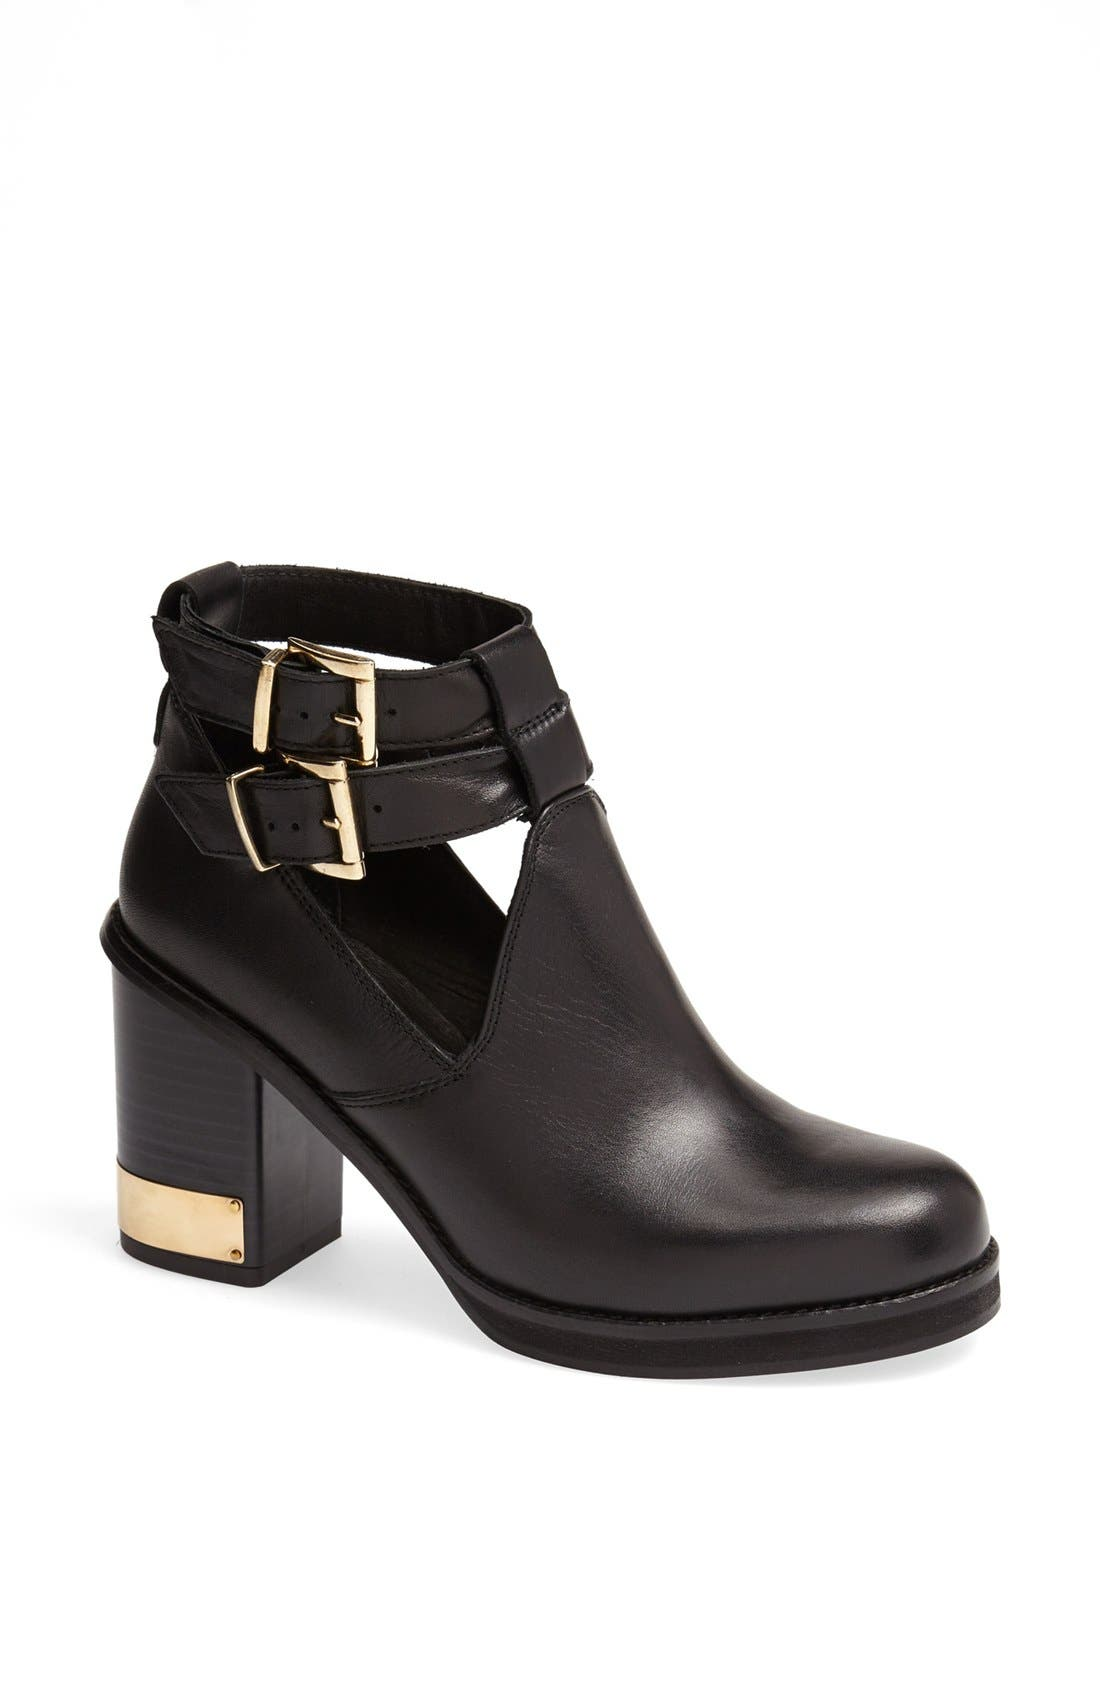 Alternate Image 1 Selected - Topshop 'All Yours' Ankle Boot